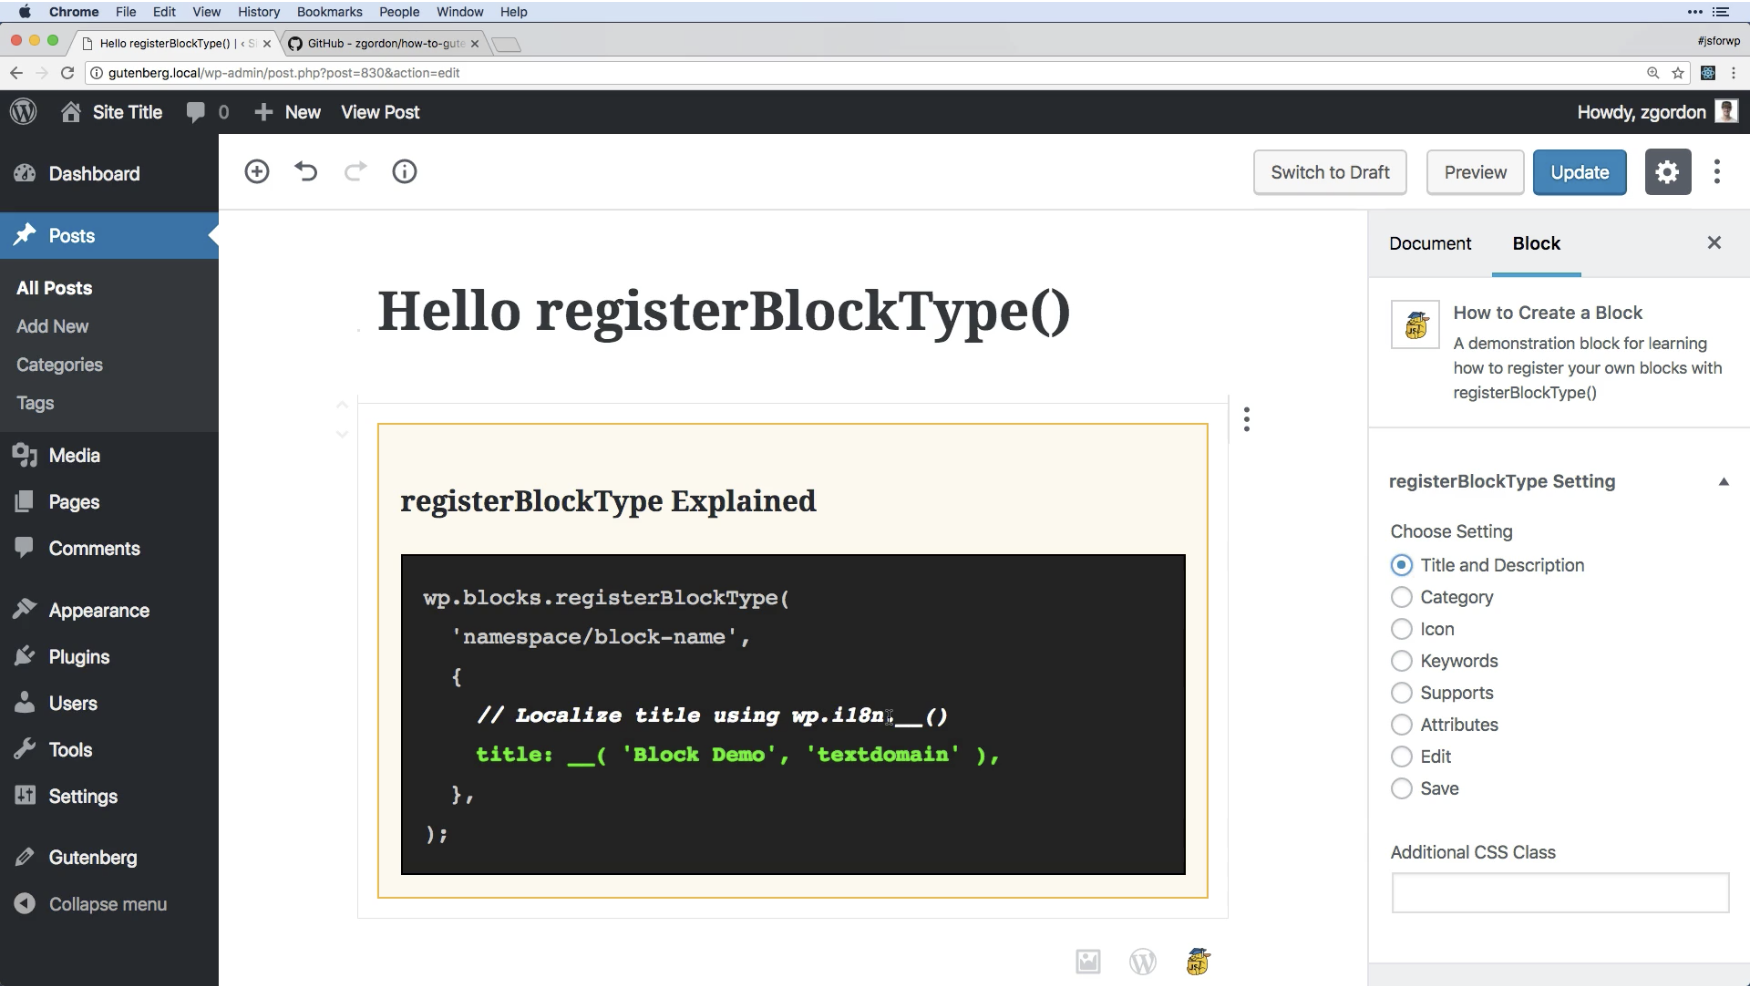 Screenshot of block installed showing the title setting